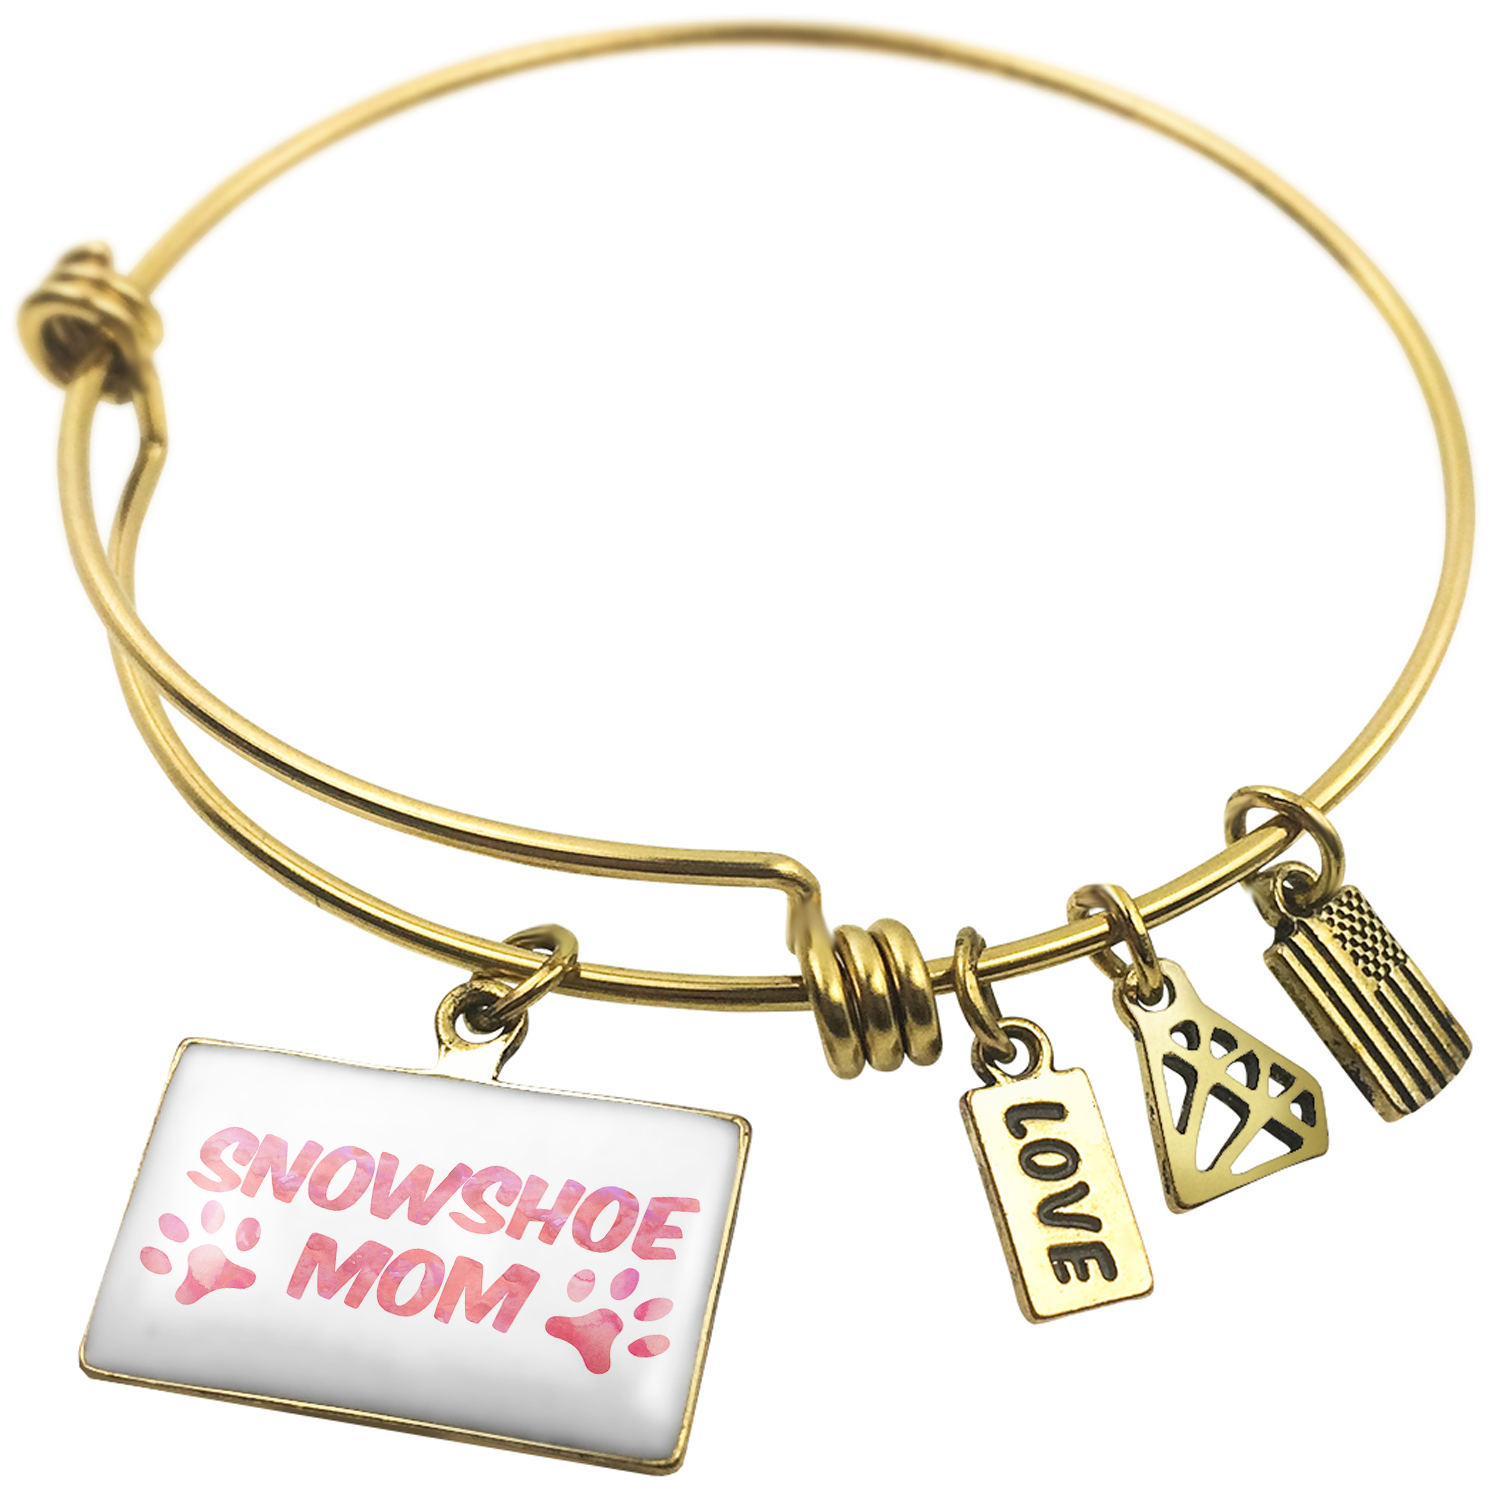 Expandable Wire Bangle Bracelet Dog & Cat Mom Snowshoe NEONBLOND by NEONBLOND